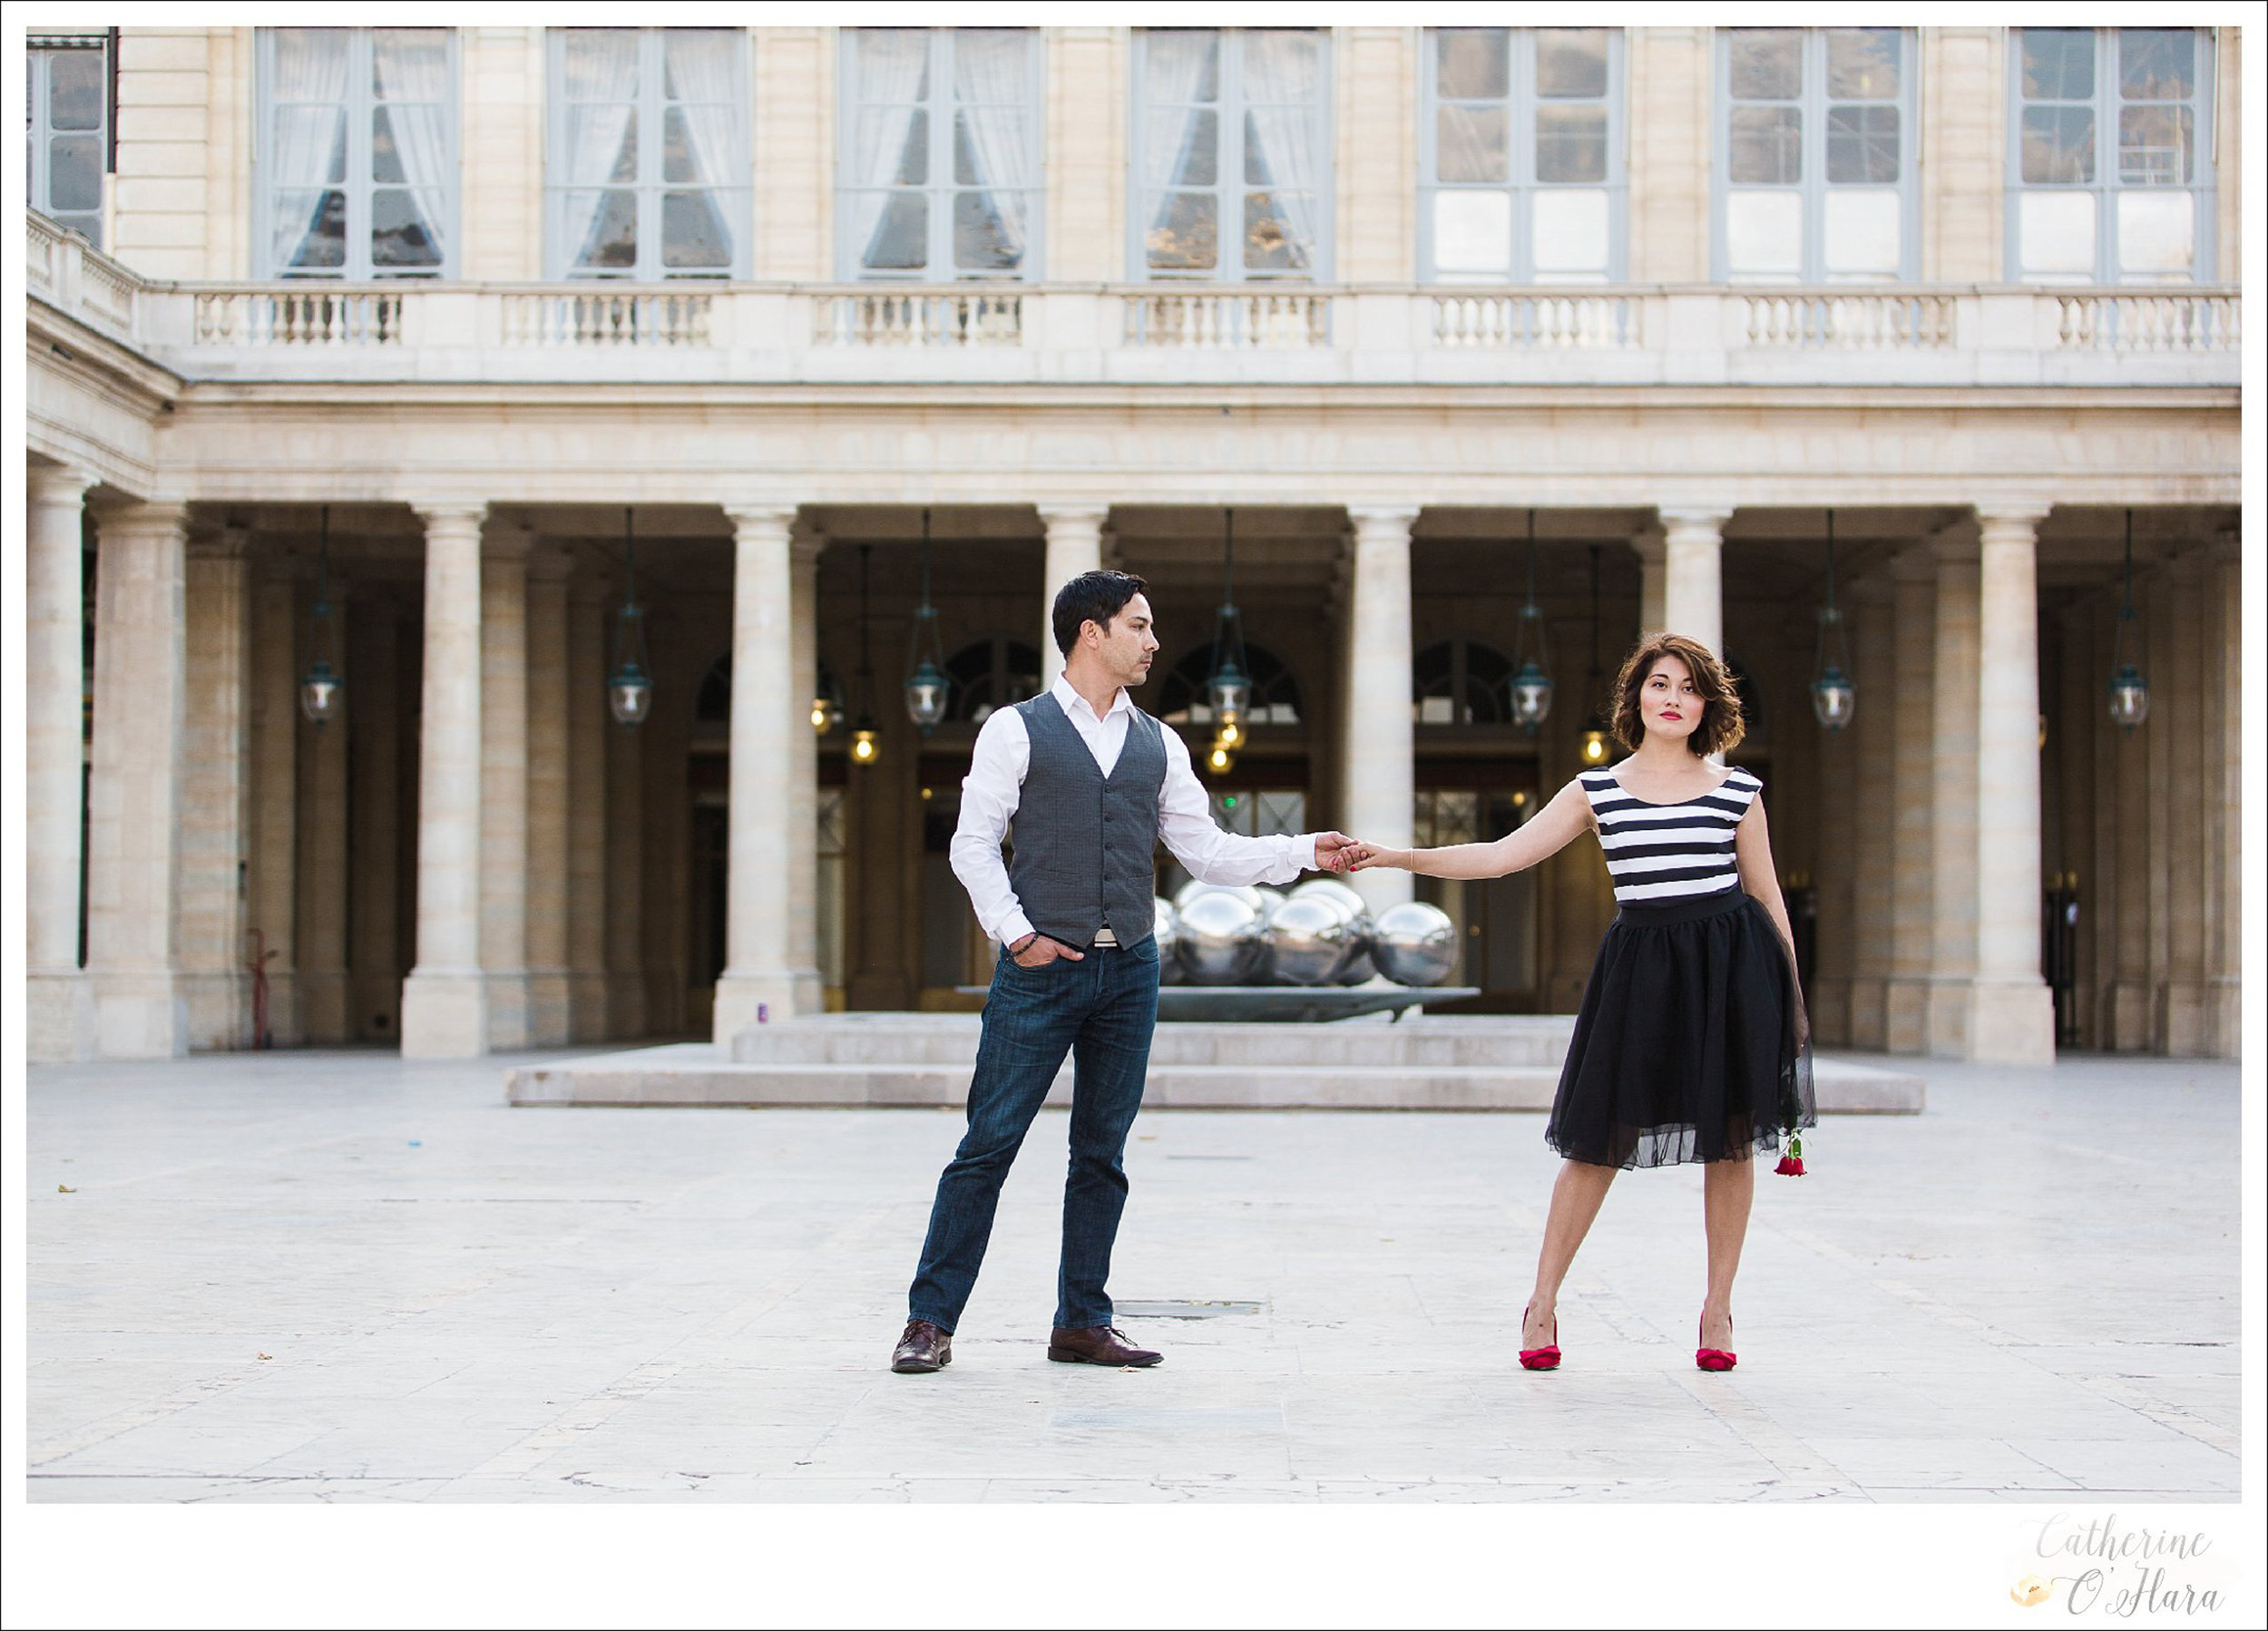 17-paris-engagement-photographer-france.jpg